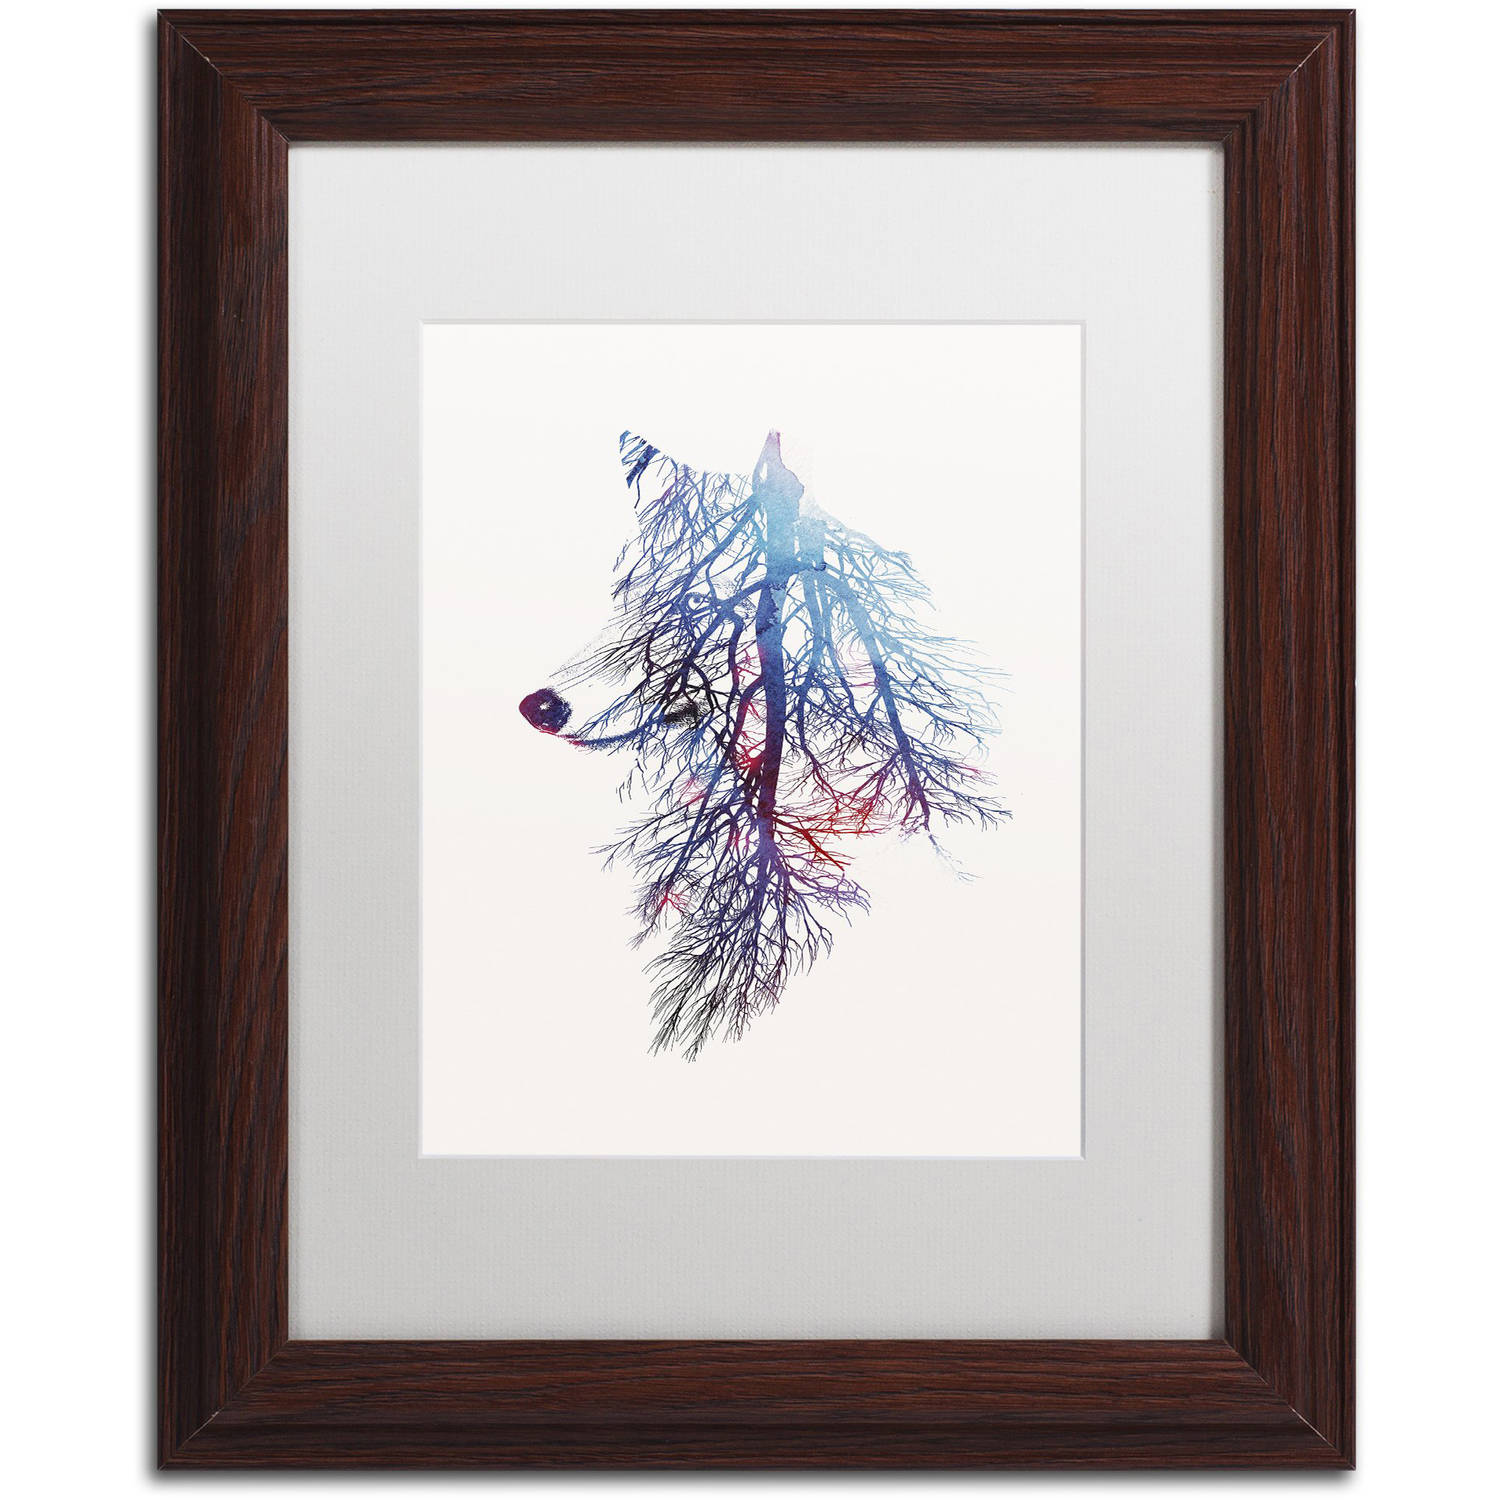 Trademark Fine Art 'My Roots' Canvas Art by Robert Farkas, White Matte, Wood Frame